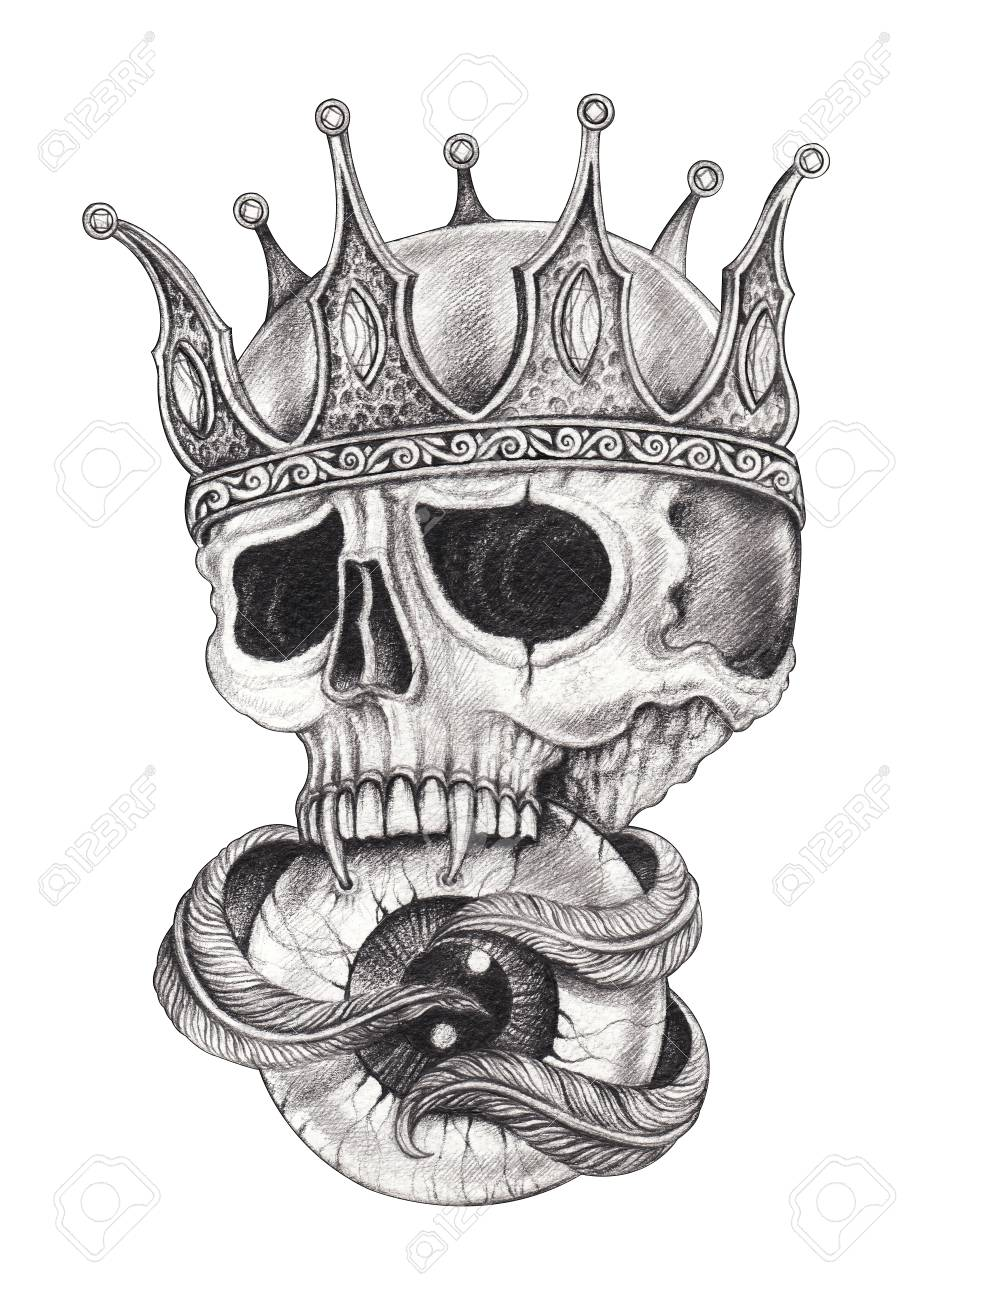 f712405596472 Art Surreal King Skull Tattoo. Hand drawing on paper. Stock Photo -  116759526